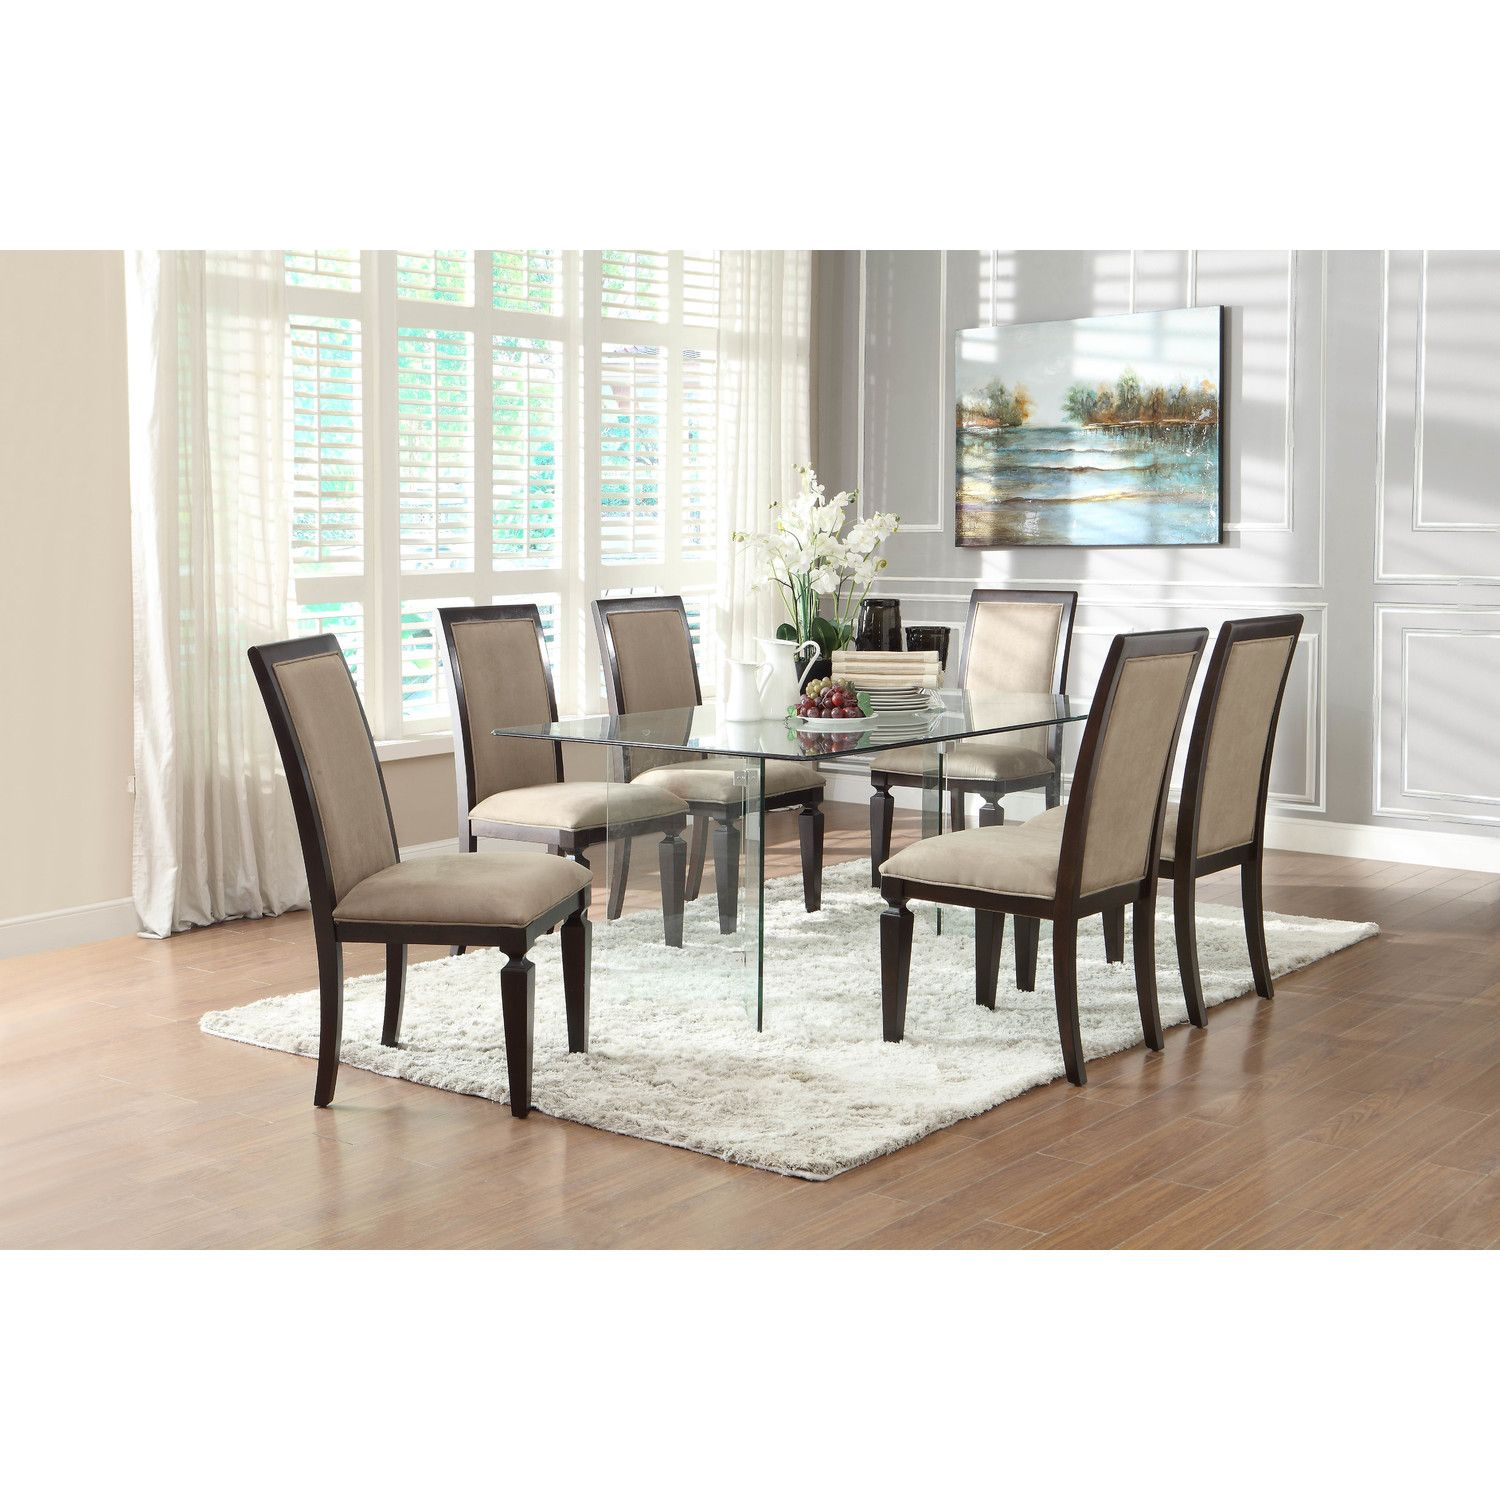 Woodbridge Home Designs Alouette Dining Table